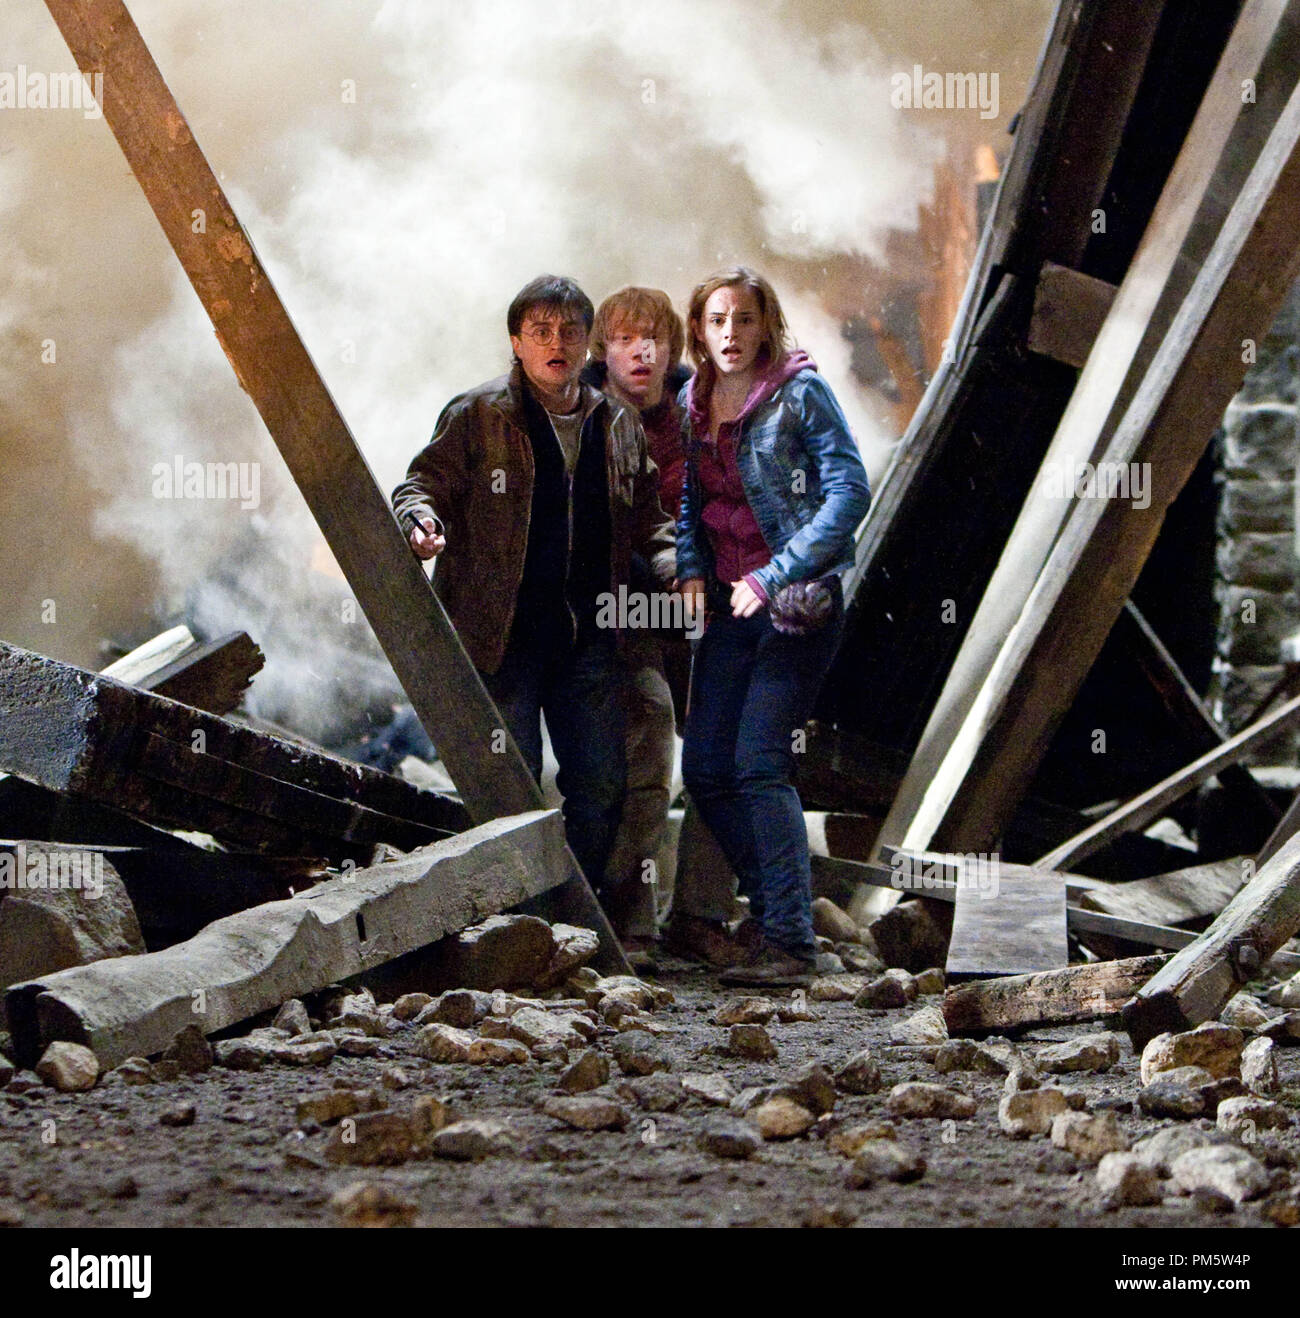 """(L-r) DANIEL RADCLIFFE as Harry Potter, RUPERT GRINT as Ron Weasley and EMMA WATSON as Hermione Granger in Warner Bros. Pictures' fantasy adventure """"HARRY POTTER AND THE DEATHLY HALLOWS – PART 2,"""" a Warner Bros. Pictures release. - Stock Image"""